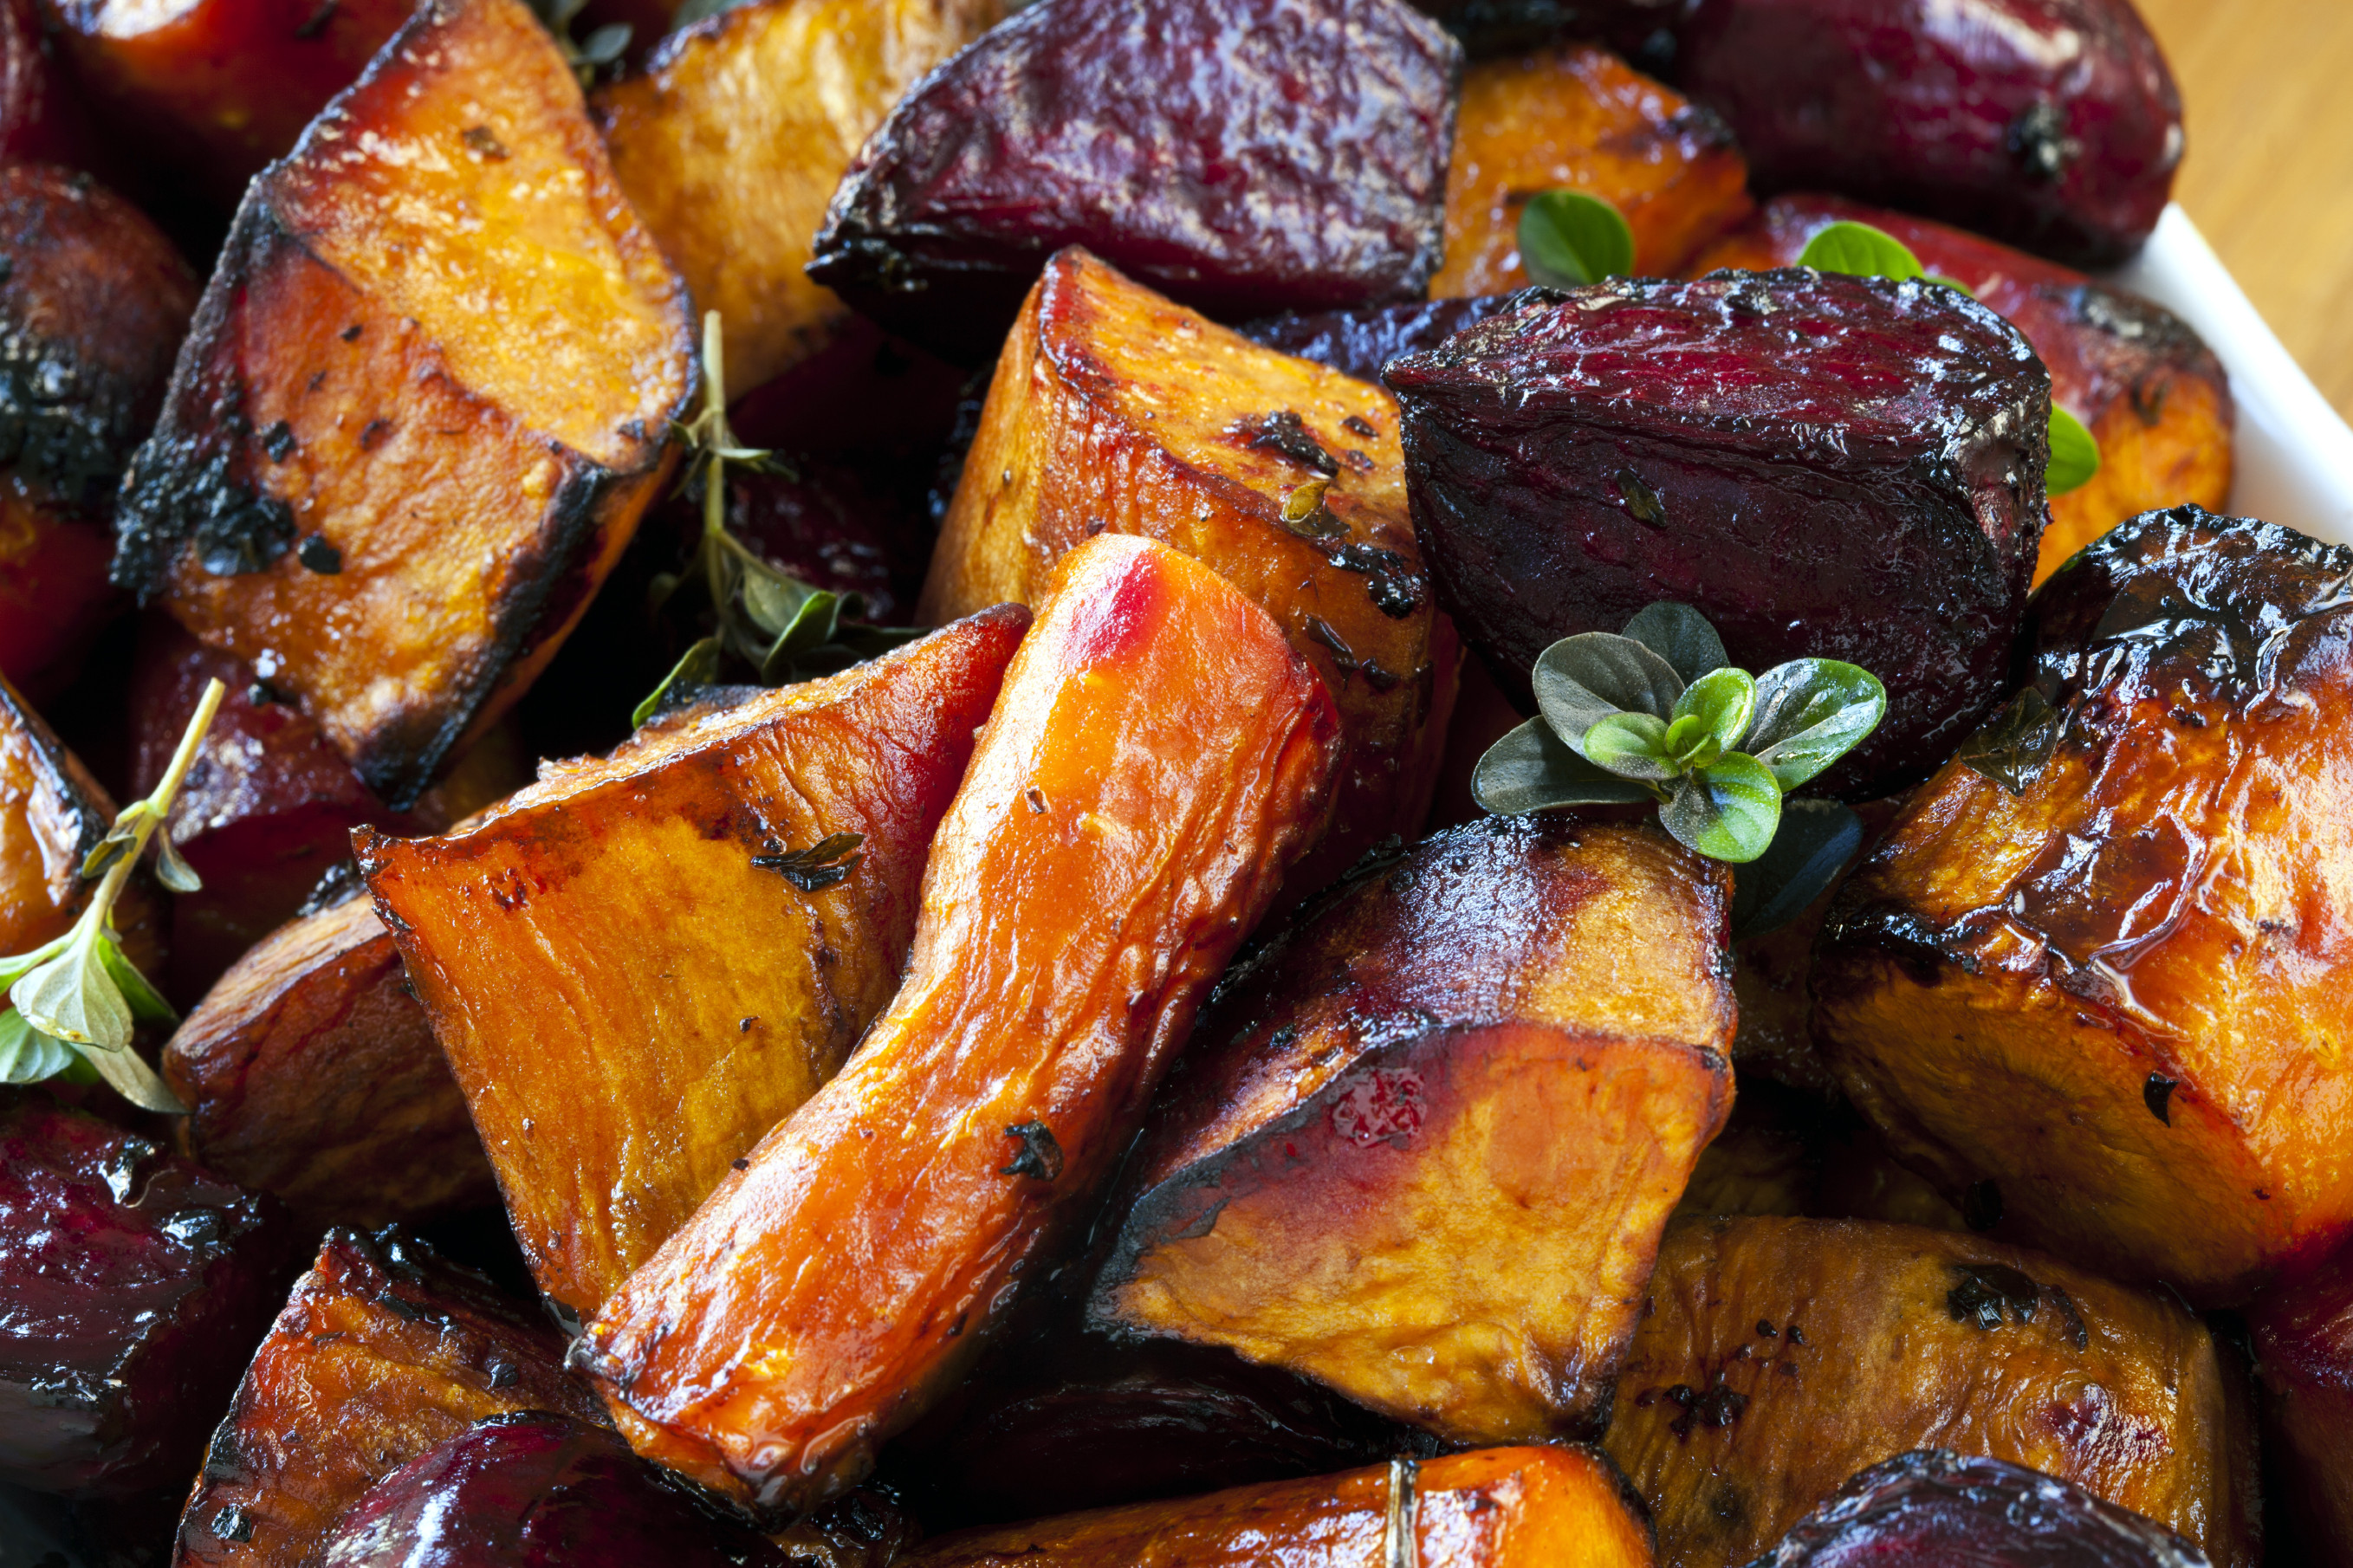 Roasted Beets And Sweet Potatoes  Anatomy of a Great Summer Salad Roche Bros Supermarkets